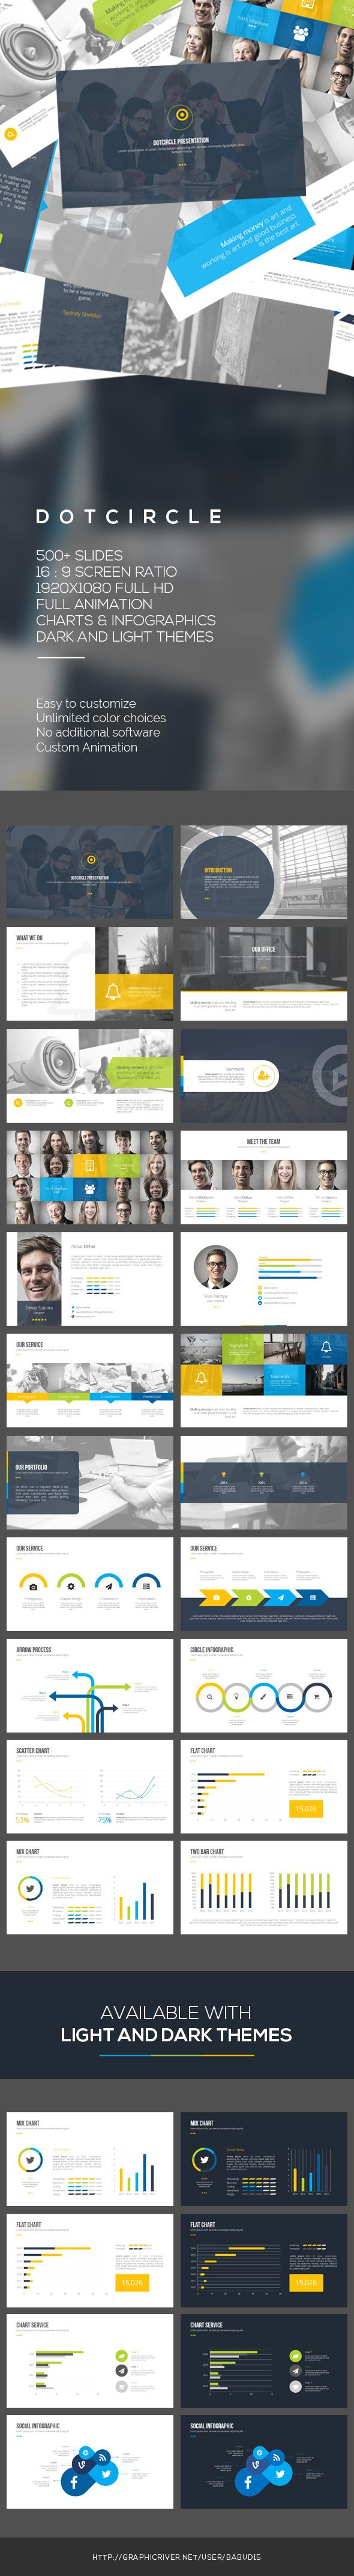 Dotcircle PowerPoint Template #powerpoint #powerpointtemplate Download: http://graphicriver.net/item/dotcircle-powerpoint-template/10412264?ref=ksioks